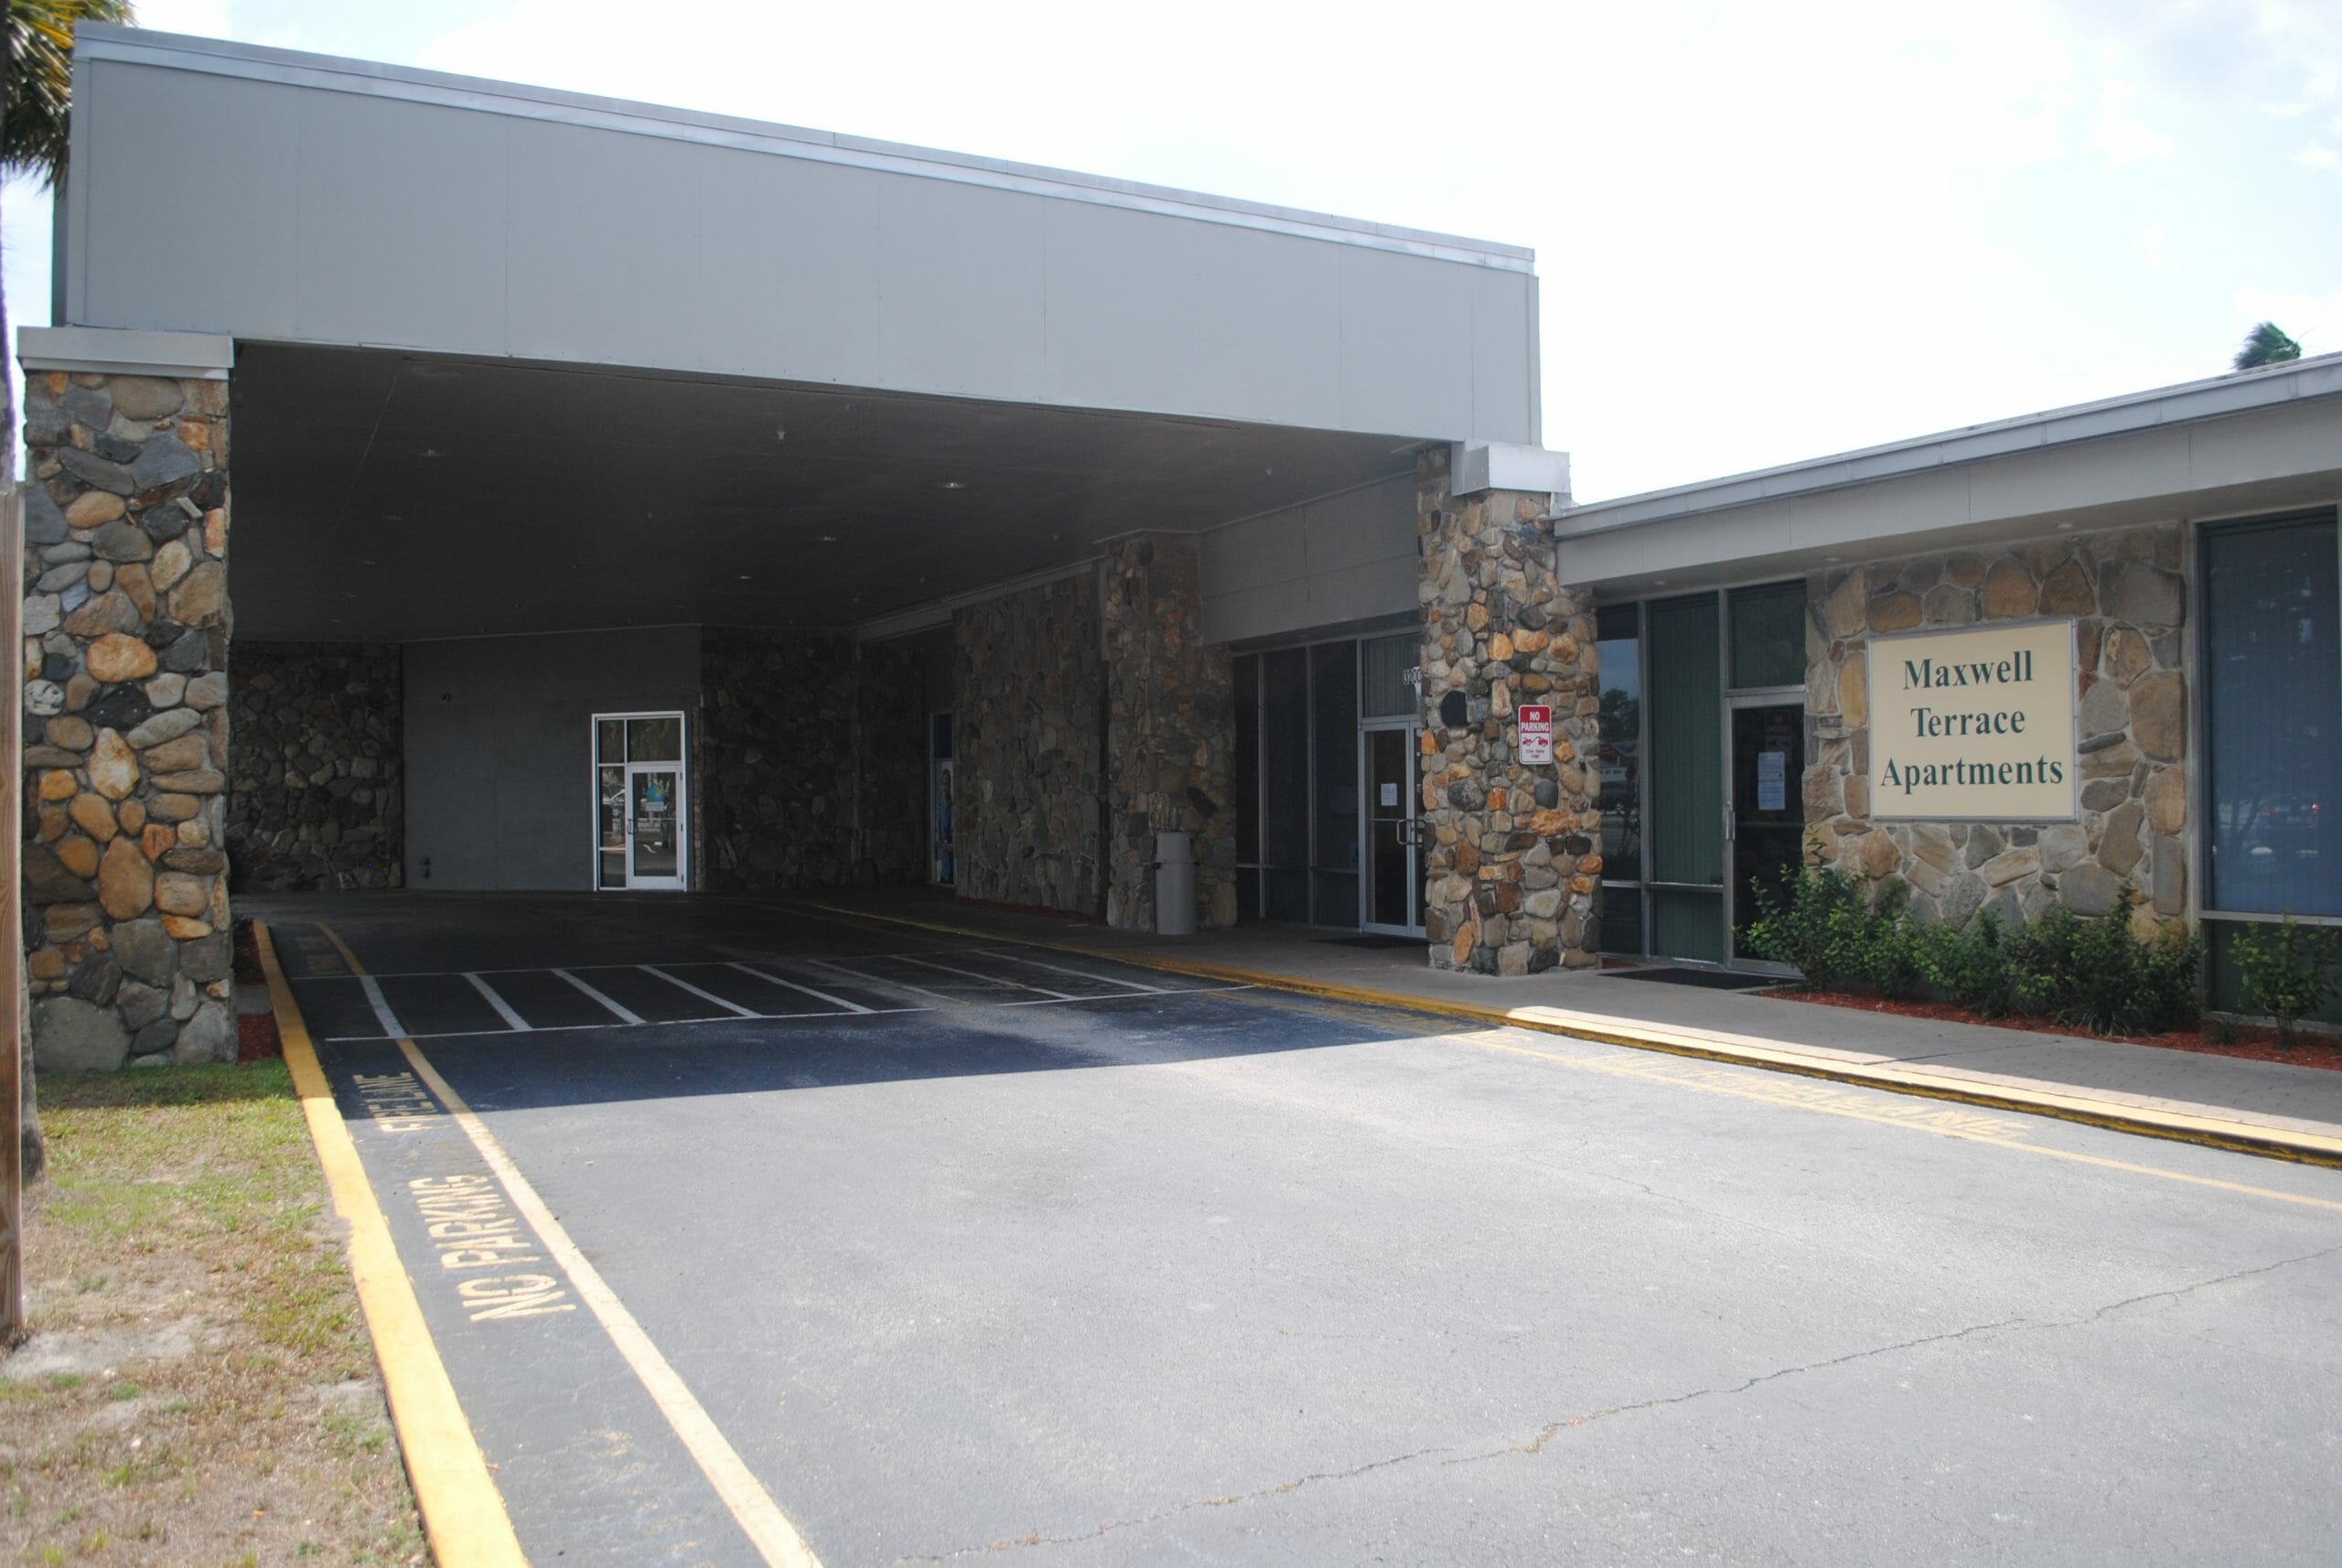 Photo of the exterior of Maxwell Terrace Apartments